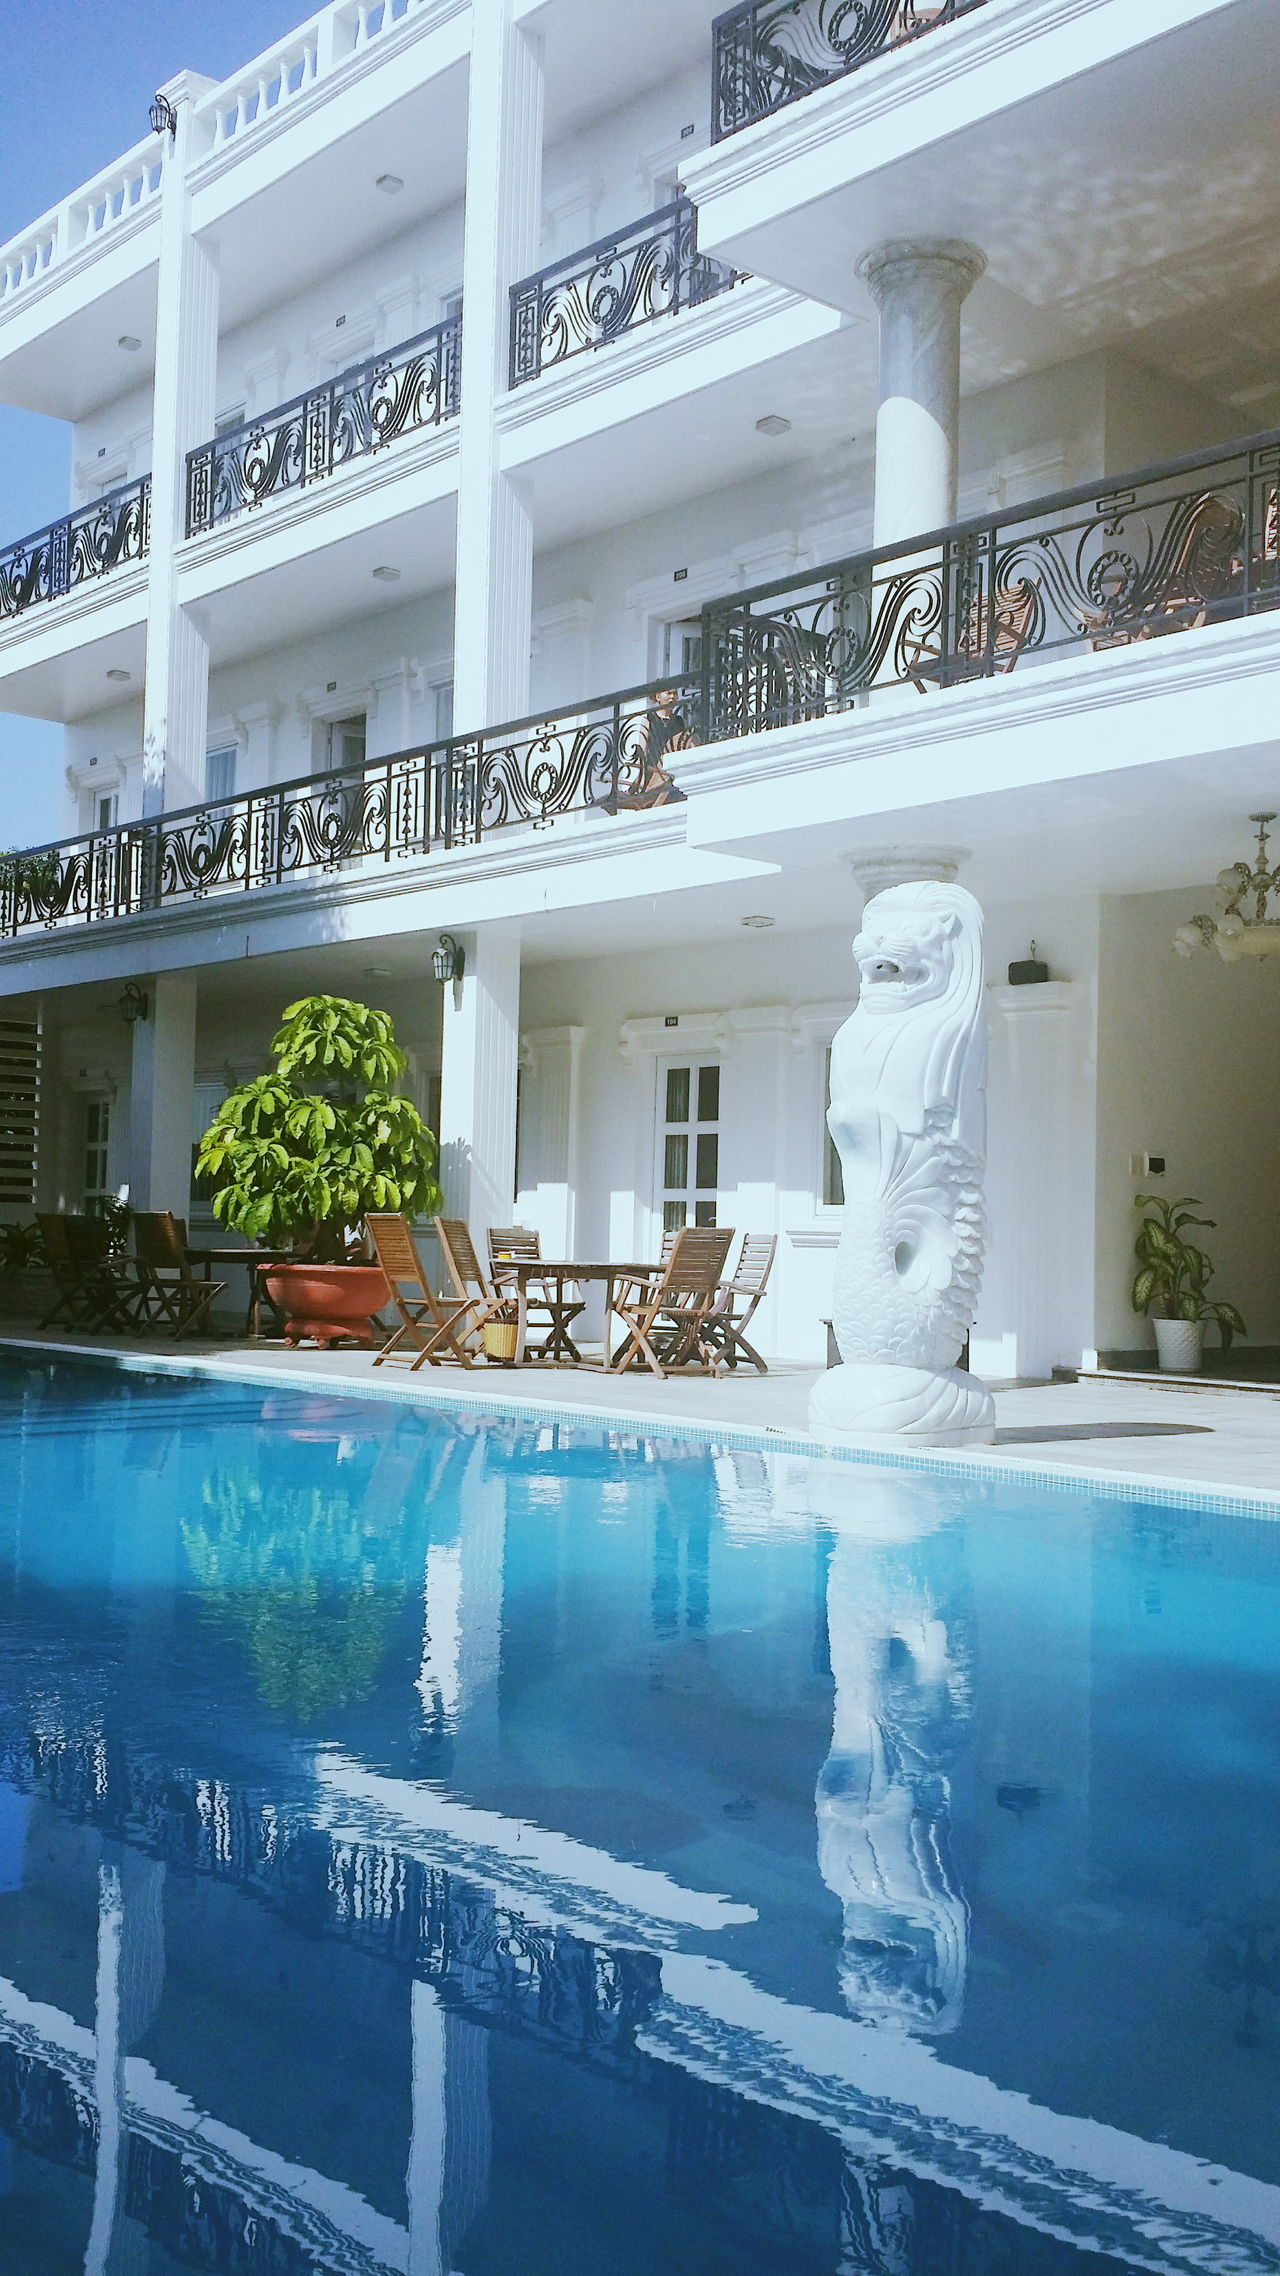 Colour Of Life Hotel Cam Ranh So Beautiful ♥♥ Swimming Pool Freshair No People Outdoor Beauty Freshwater Freshairinthemorning Lovethatplace Dontwanttoleave Staythere Withfamily